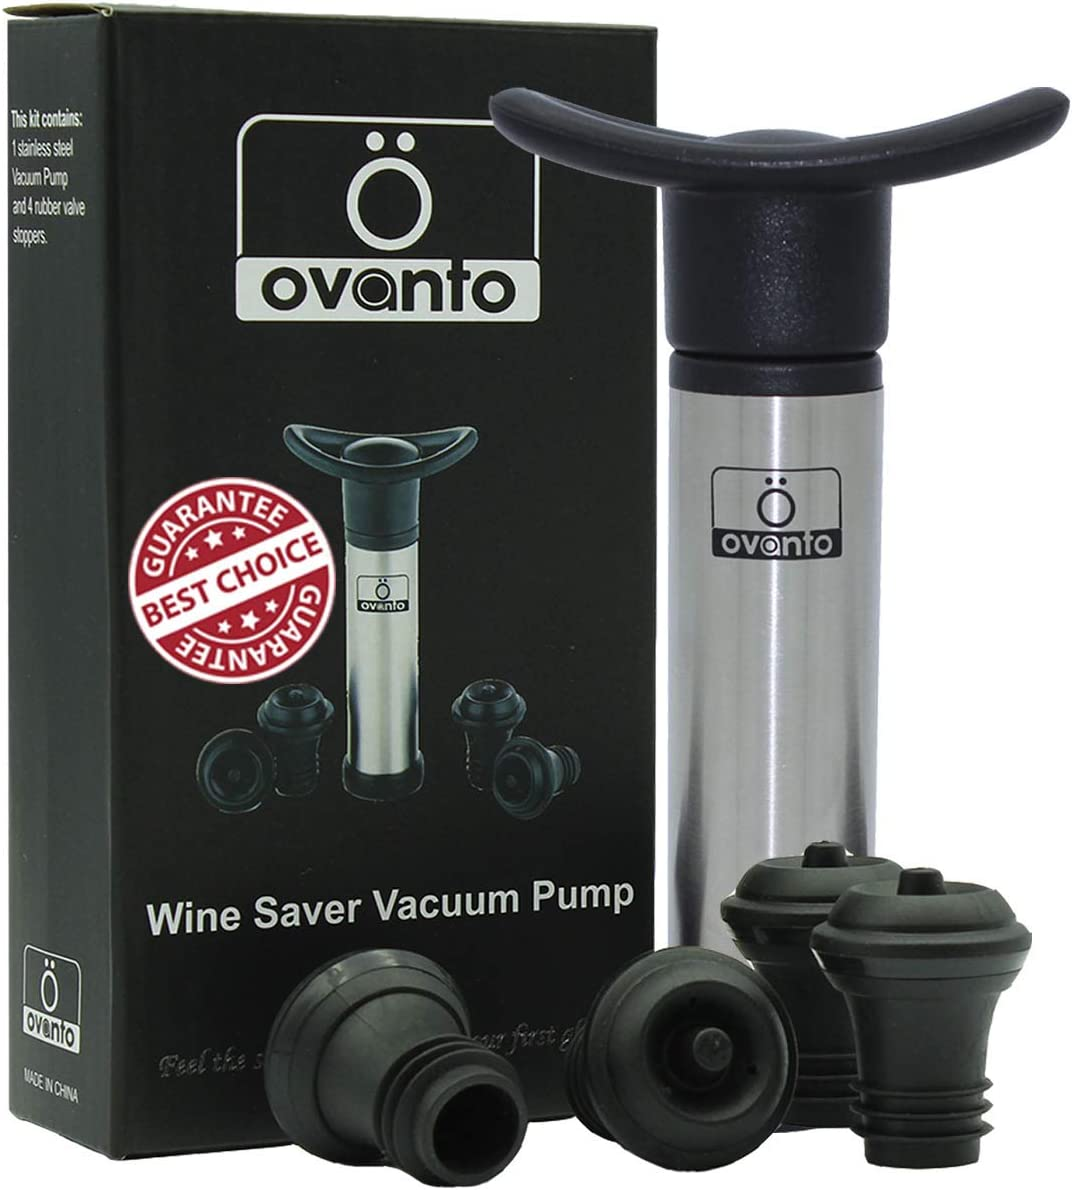 The Original Ovanto Wine Saver Vacuum Pump + 4 Tested Reusable Wine Bottle Stoppers + Wine Ebook – Leakproof Wine Preserver and Wine Stopper - Keeps Your Wine Fresh for Days